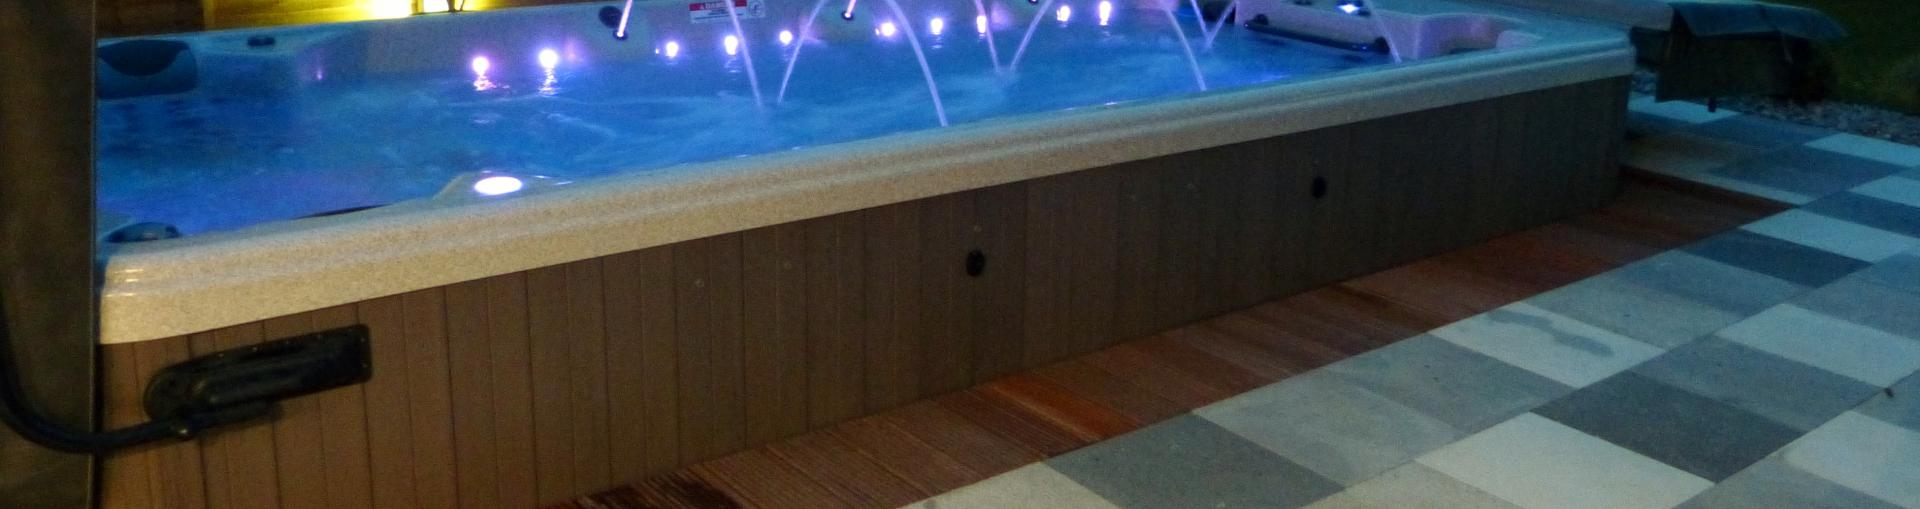 Swim Spas in North Devon from Bay spas